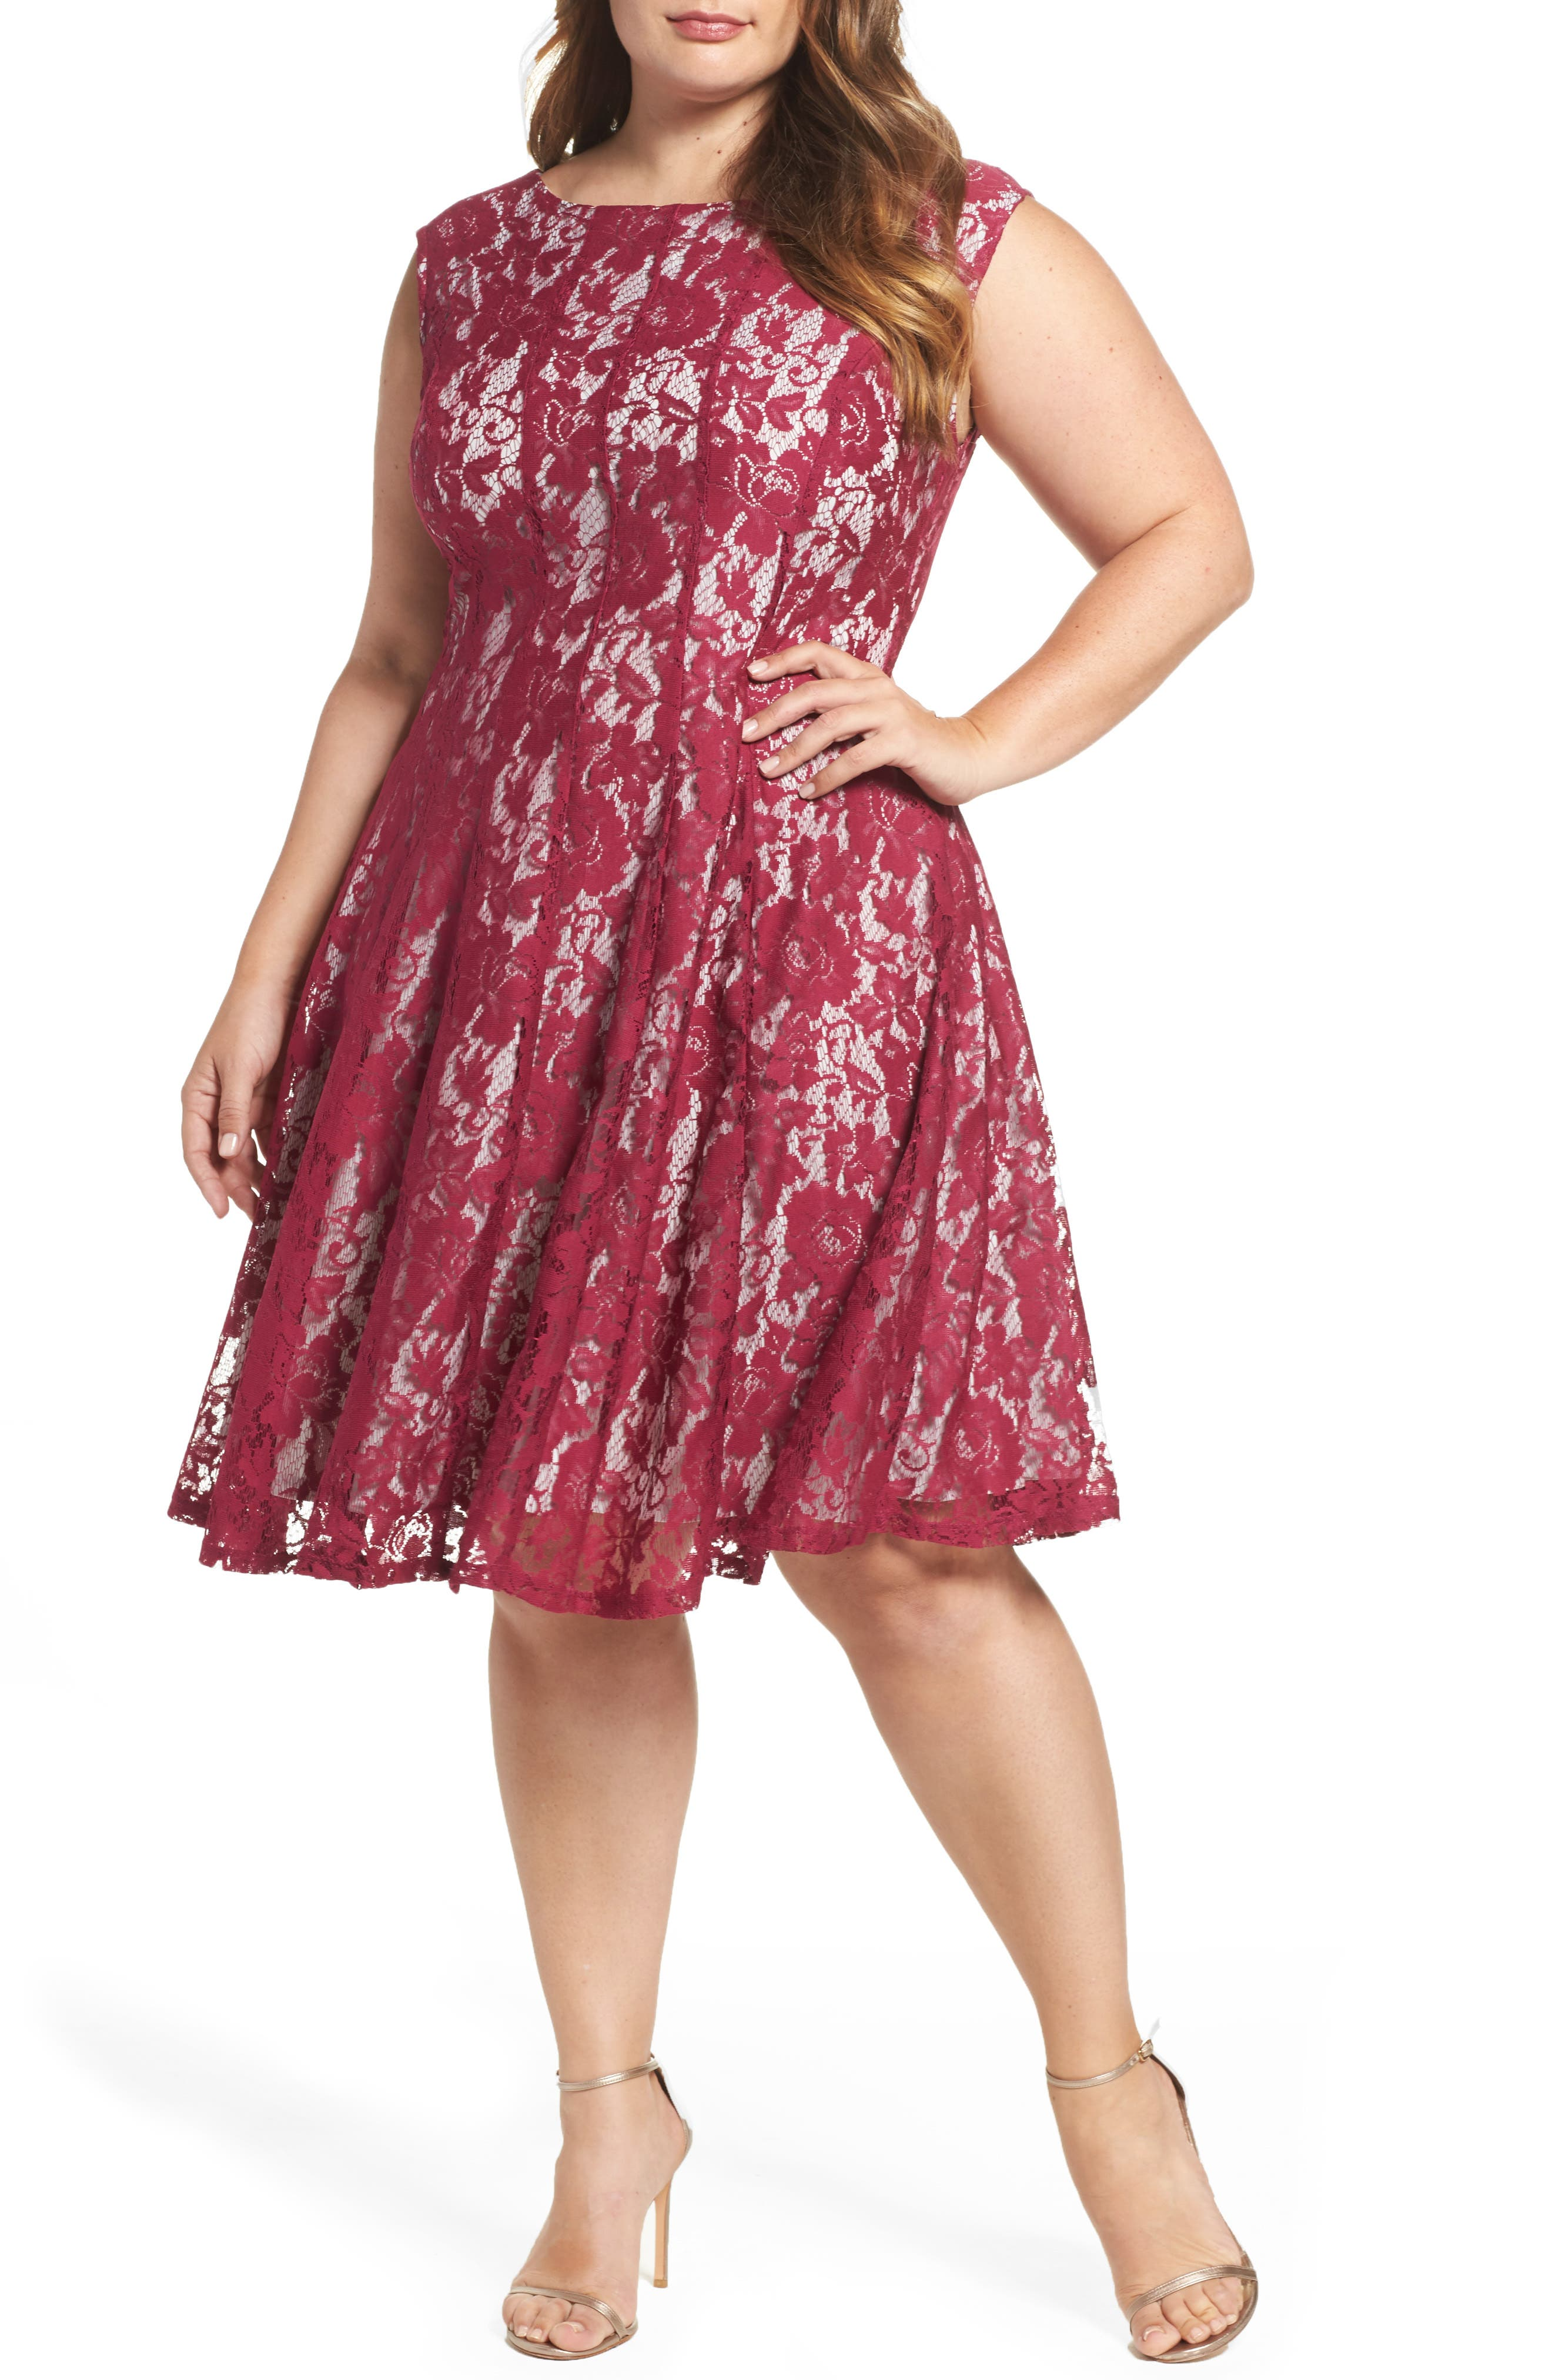 Gabby Skye Lace Fit & Flare Dress (Plus Size)